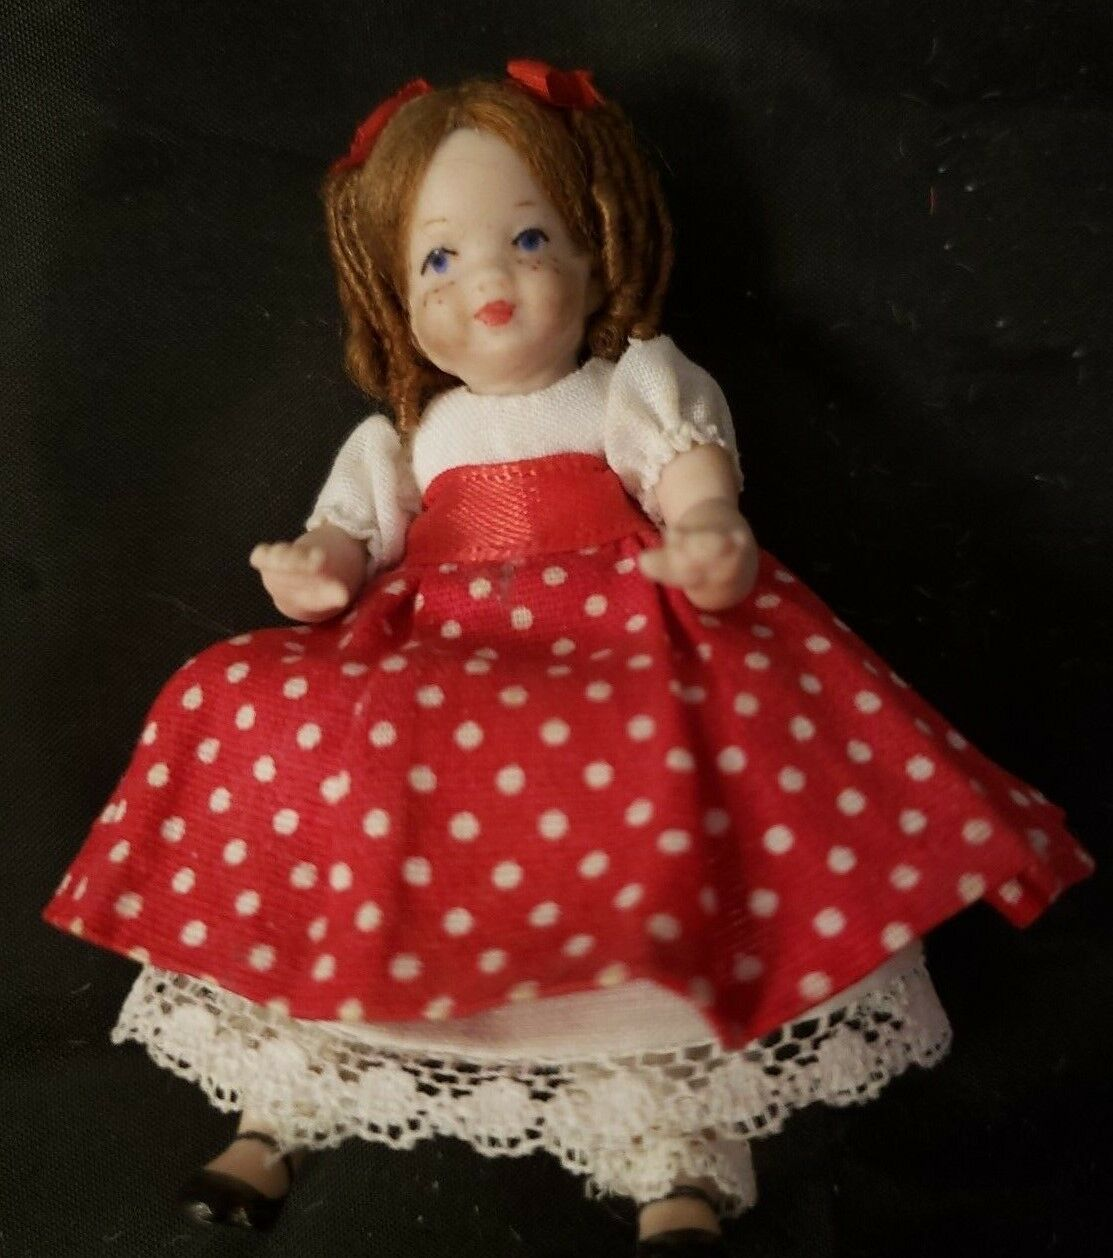 HAND MADE POLYMER MINIATURE JOINTED DOLL - 3  TALL